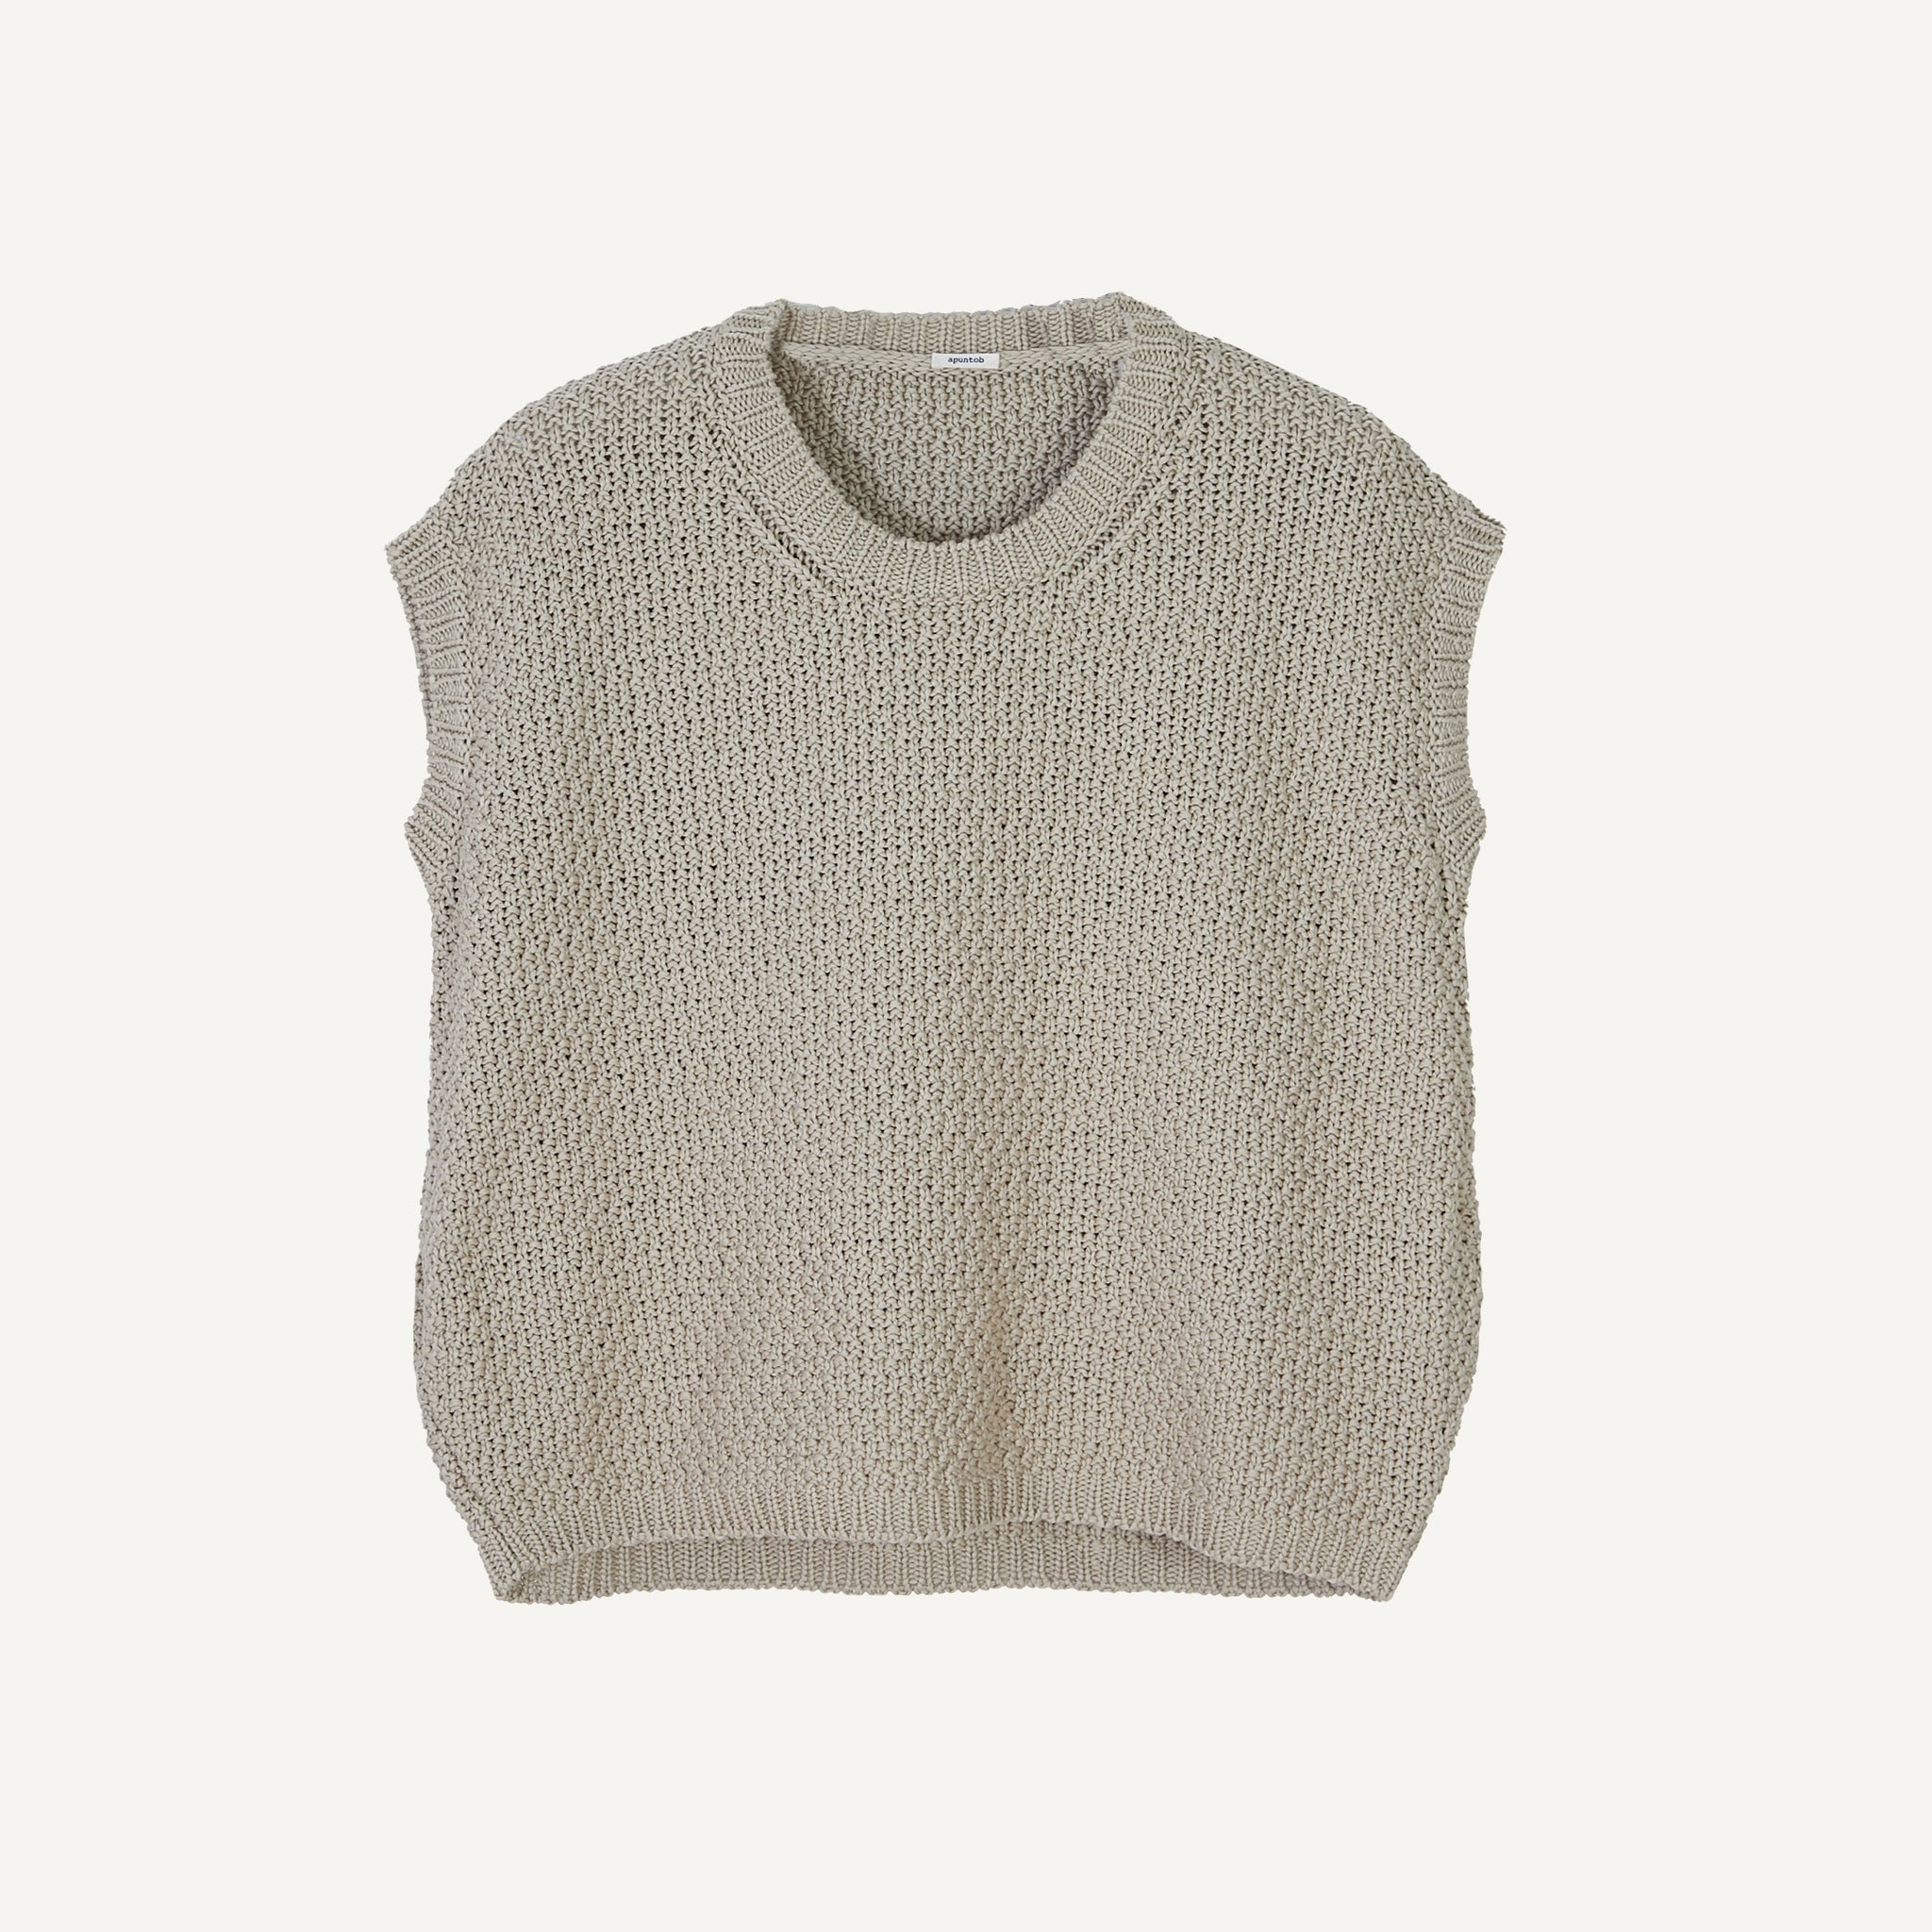 APUNTOB OPEN-KNIT SWEATER SHELL